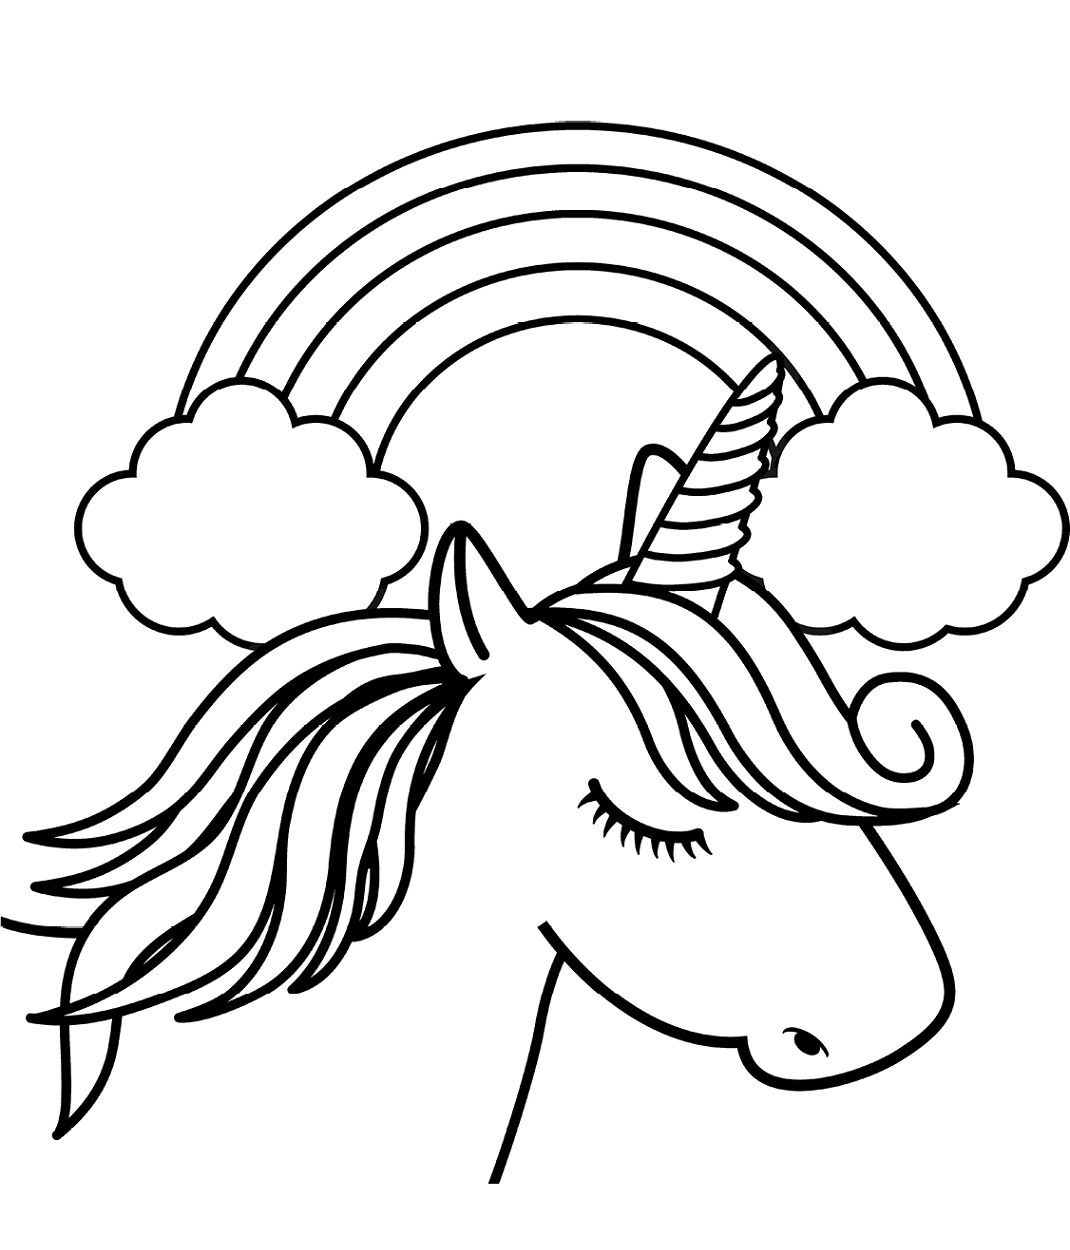 Unicorn Head In Front Of Rainbow Page Unicorn Coloring Pages Emoji Coloring Pages Coloring Pages